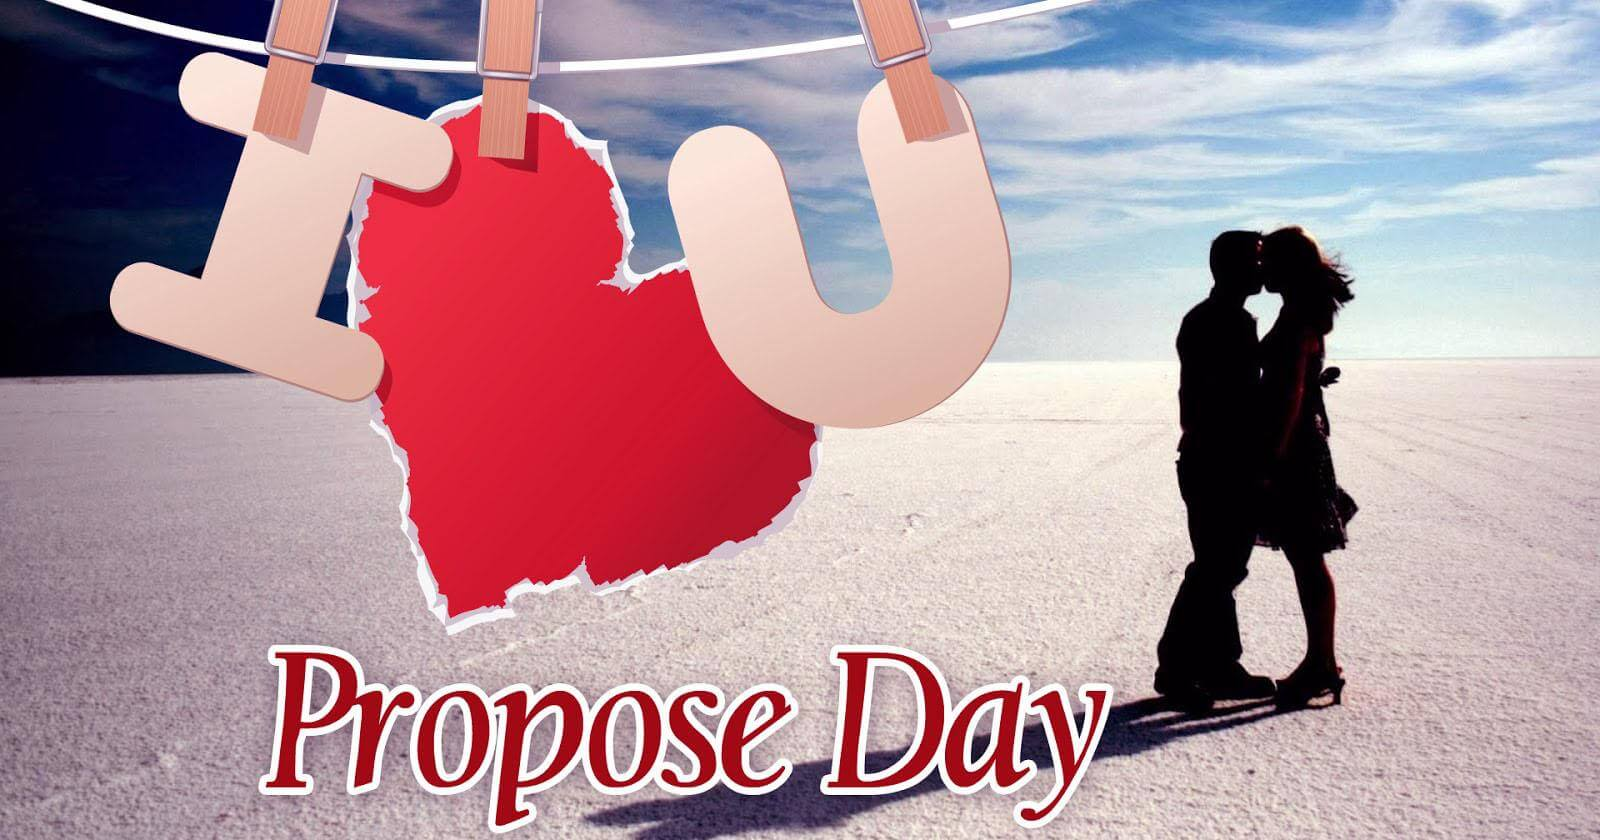 happy propose day love you heart couples february 8th pc hd wallpaper